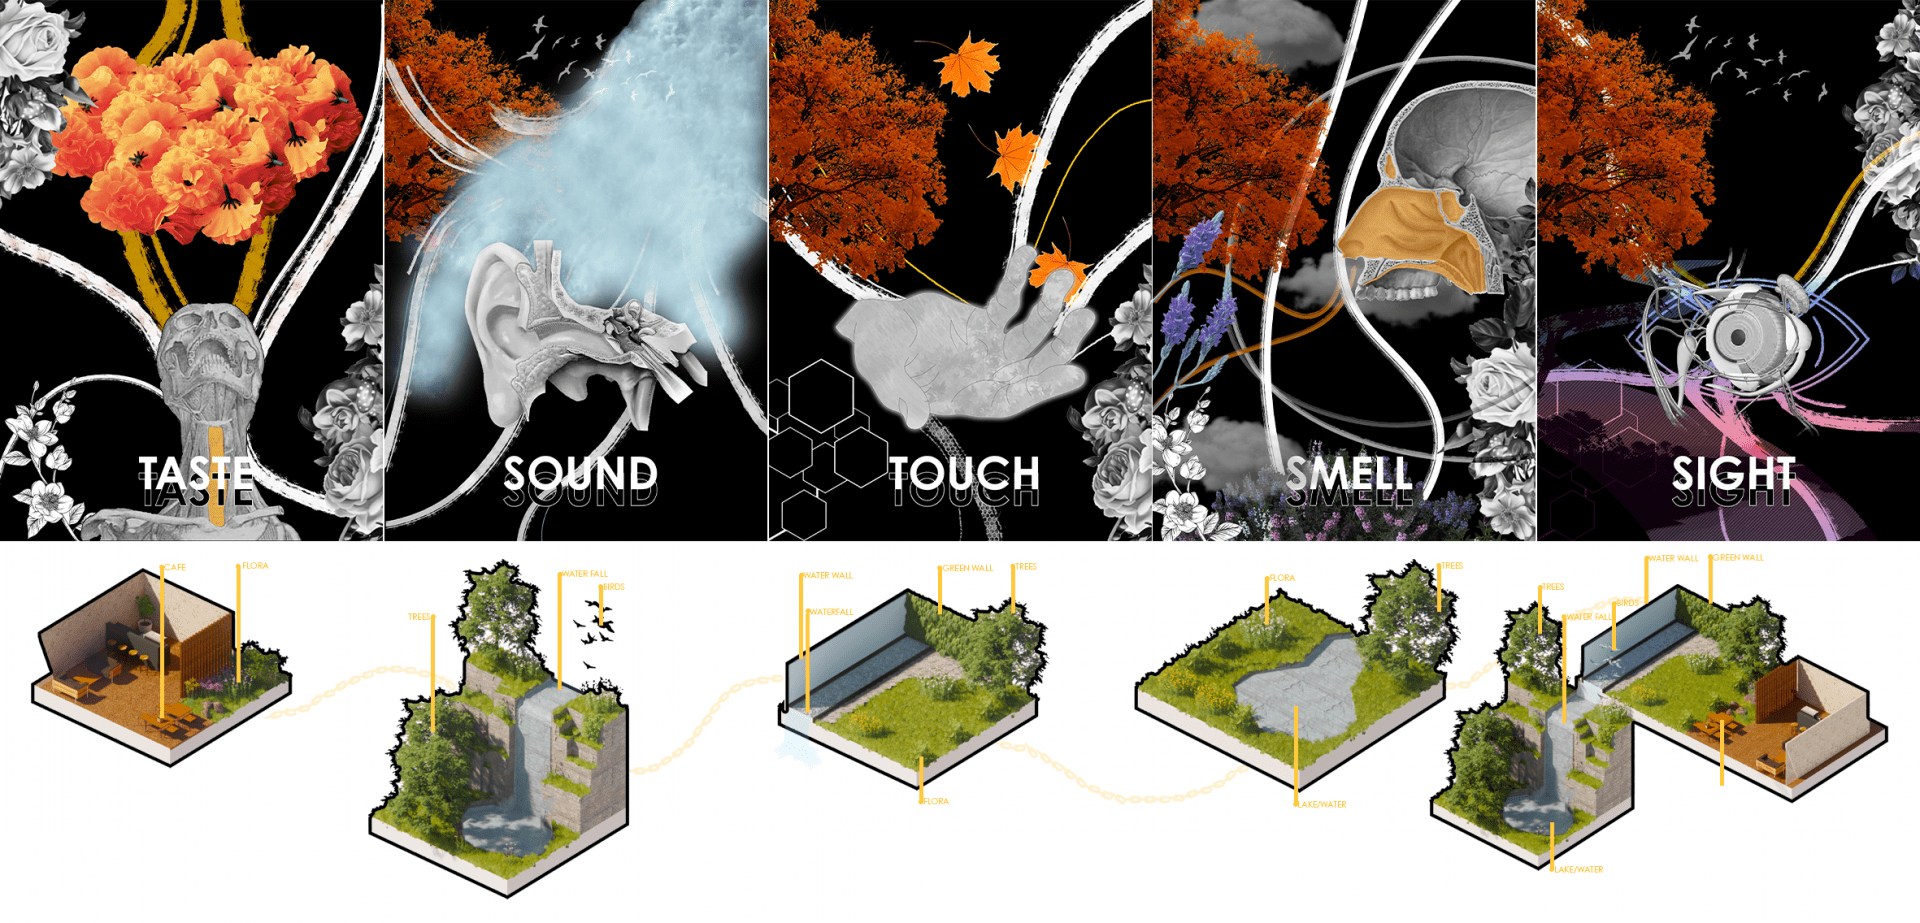 The 5 senses montaged and visualised demonstrating how to create a naturalesque climate.